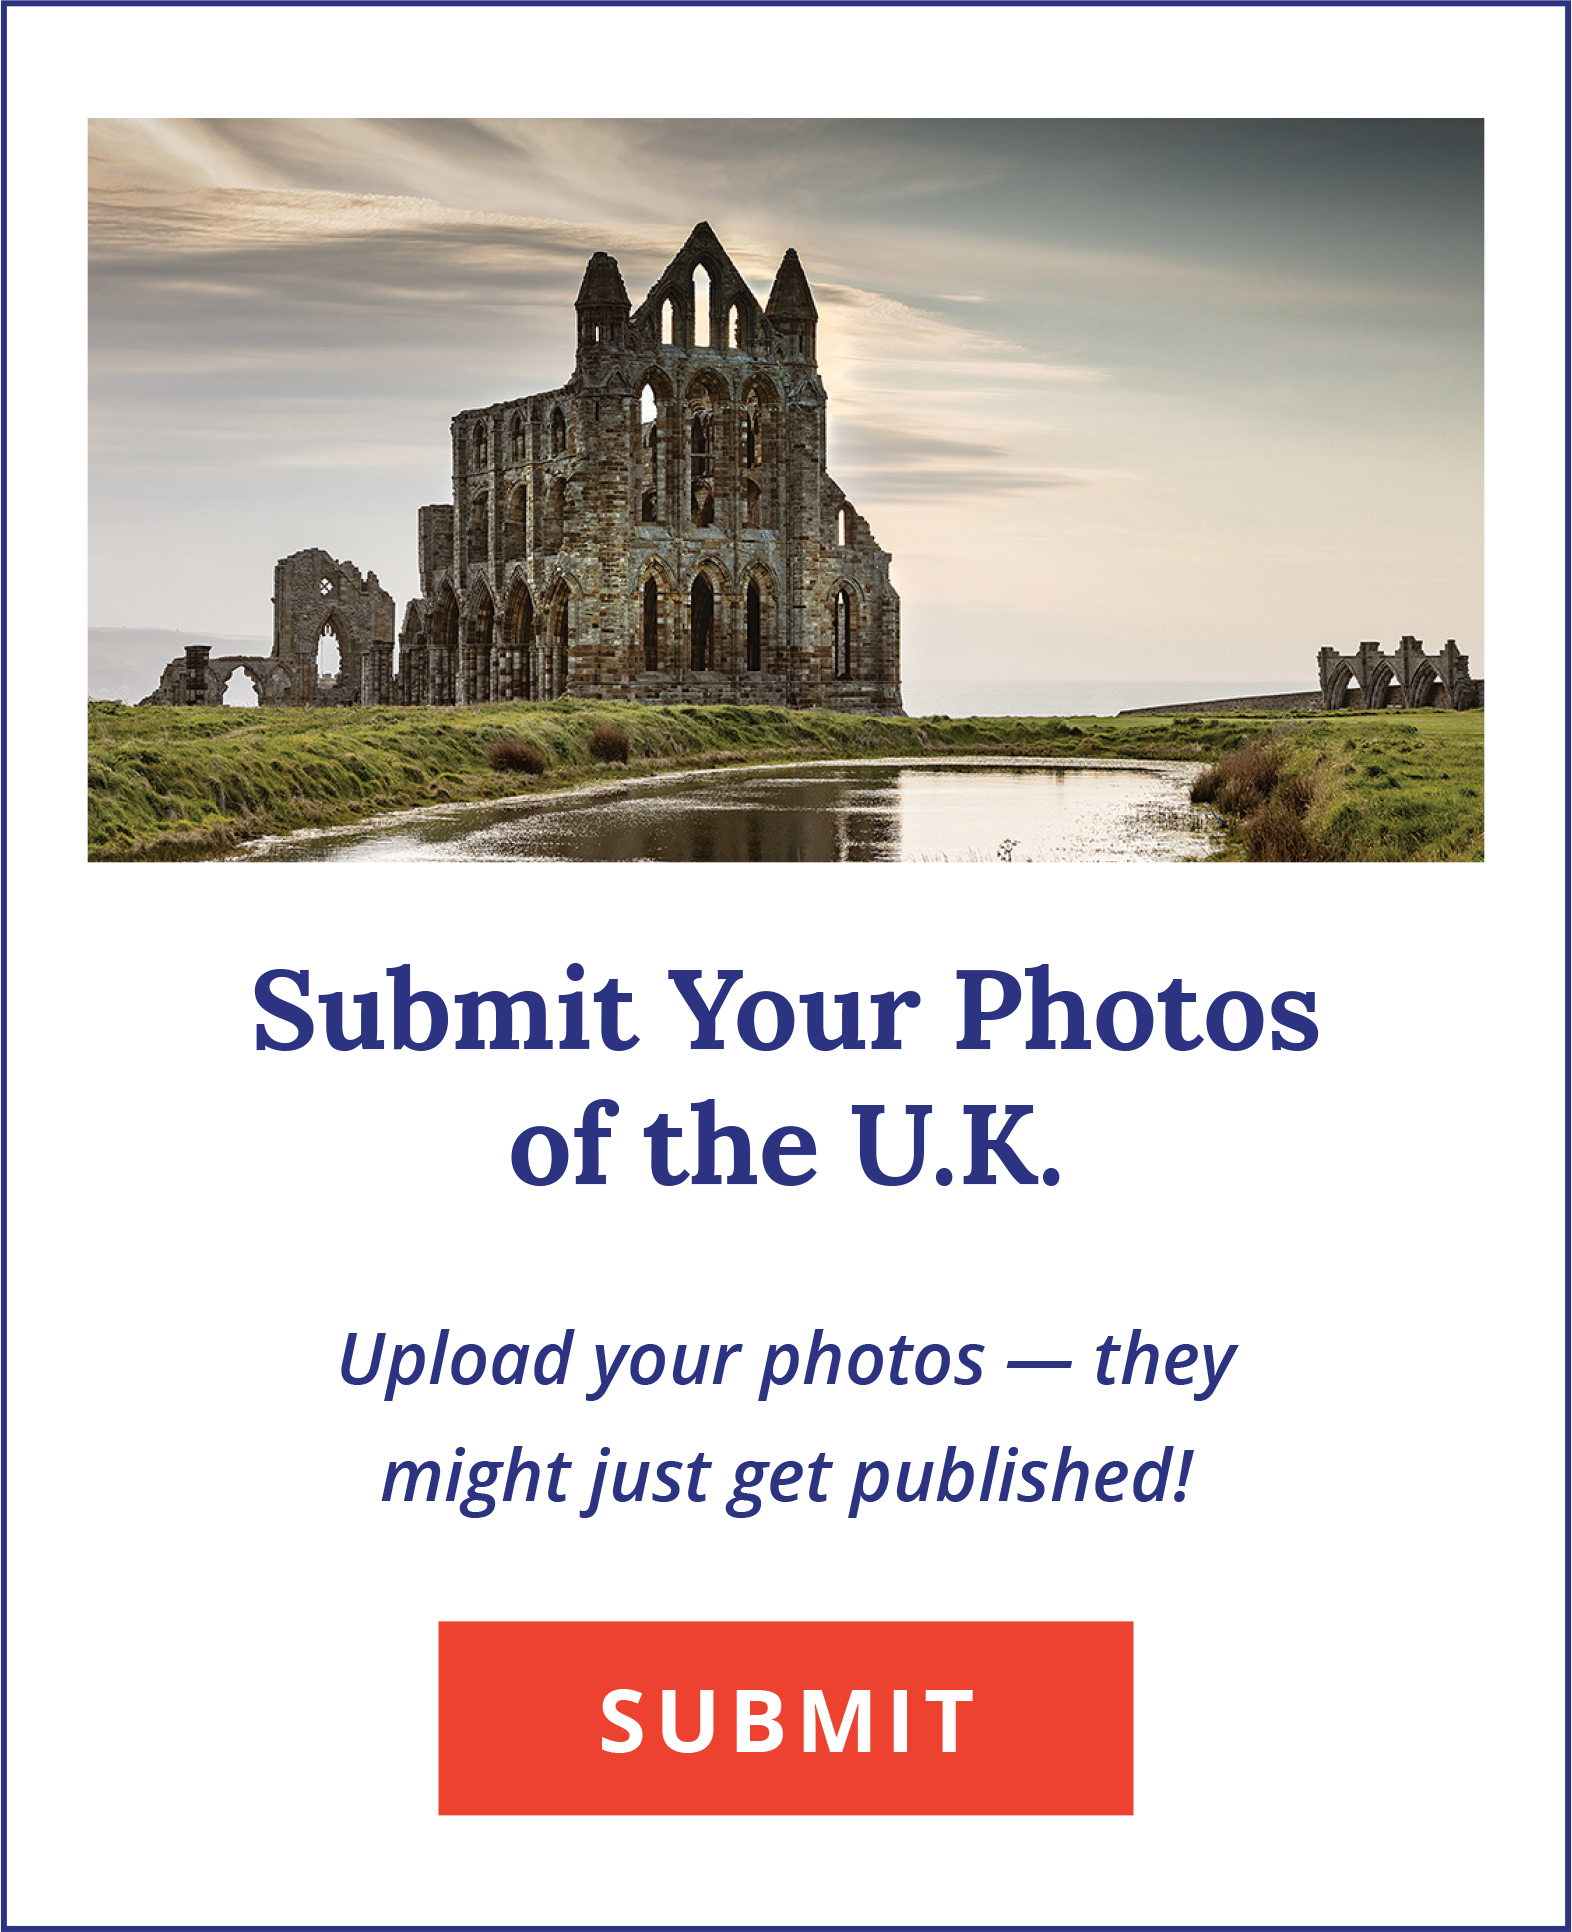 Have you taken photos that you want in our next issue? Submit them today!